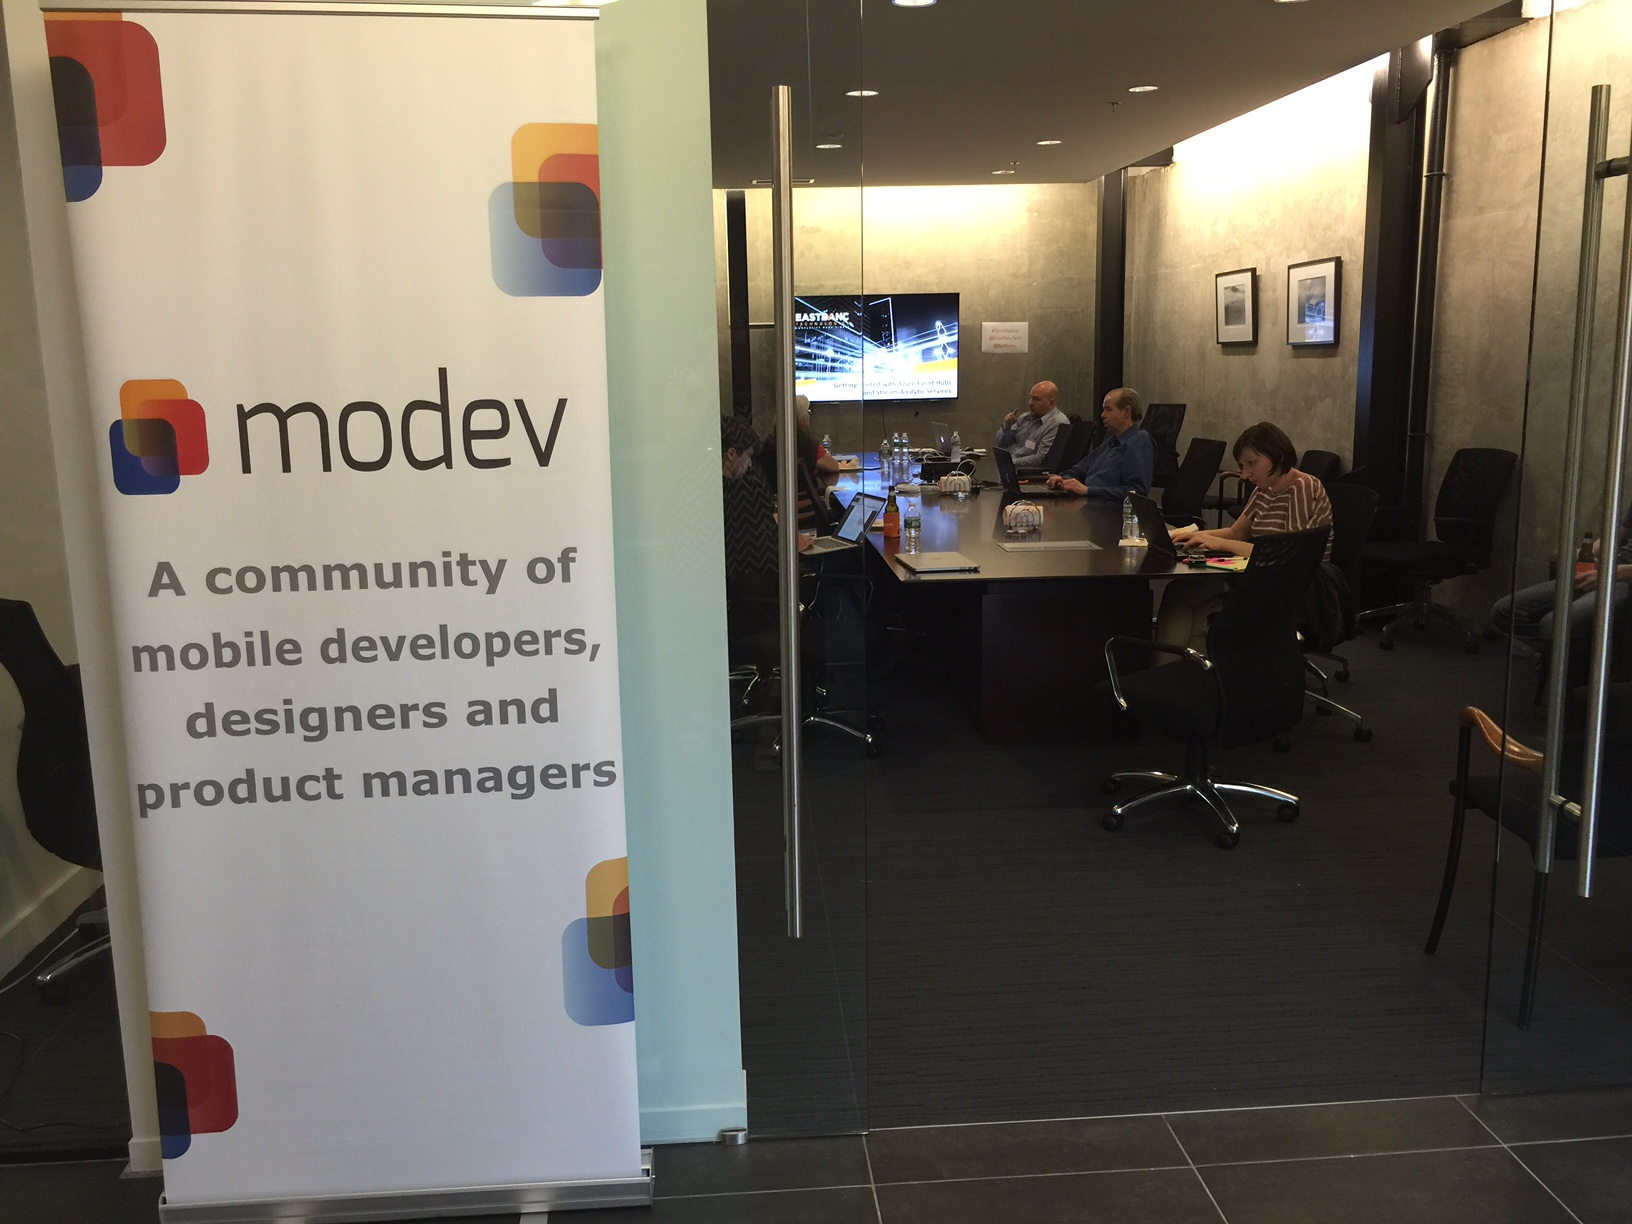 Modev meetup picture